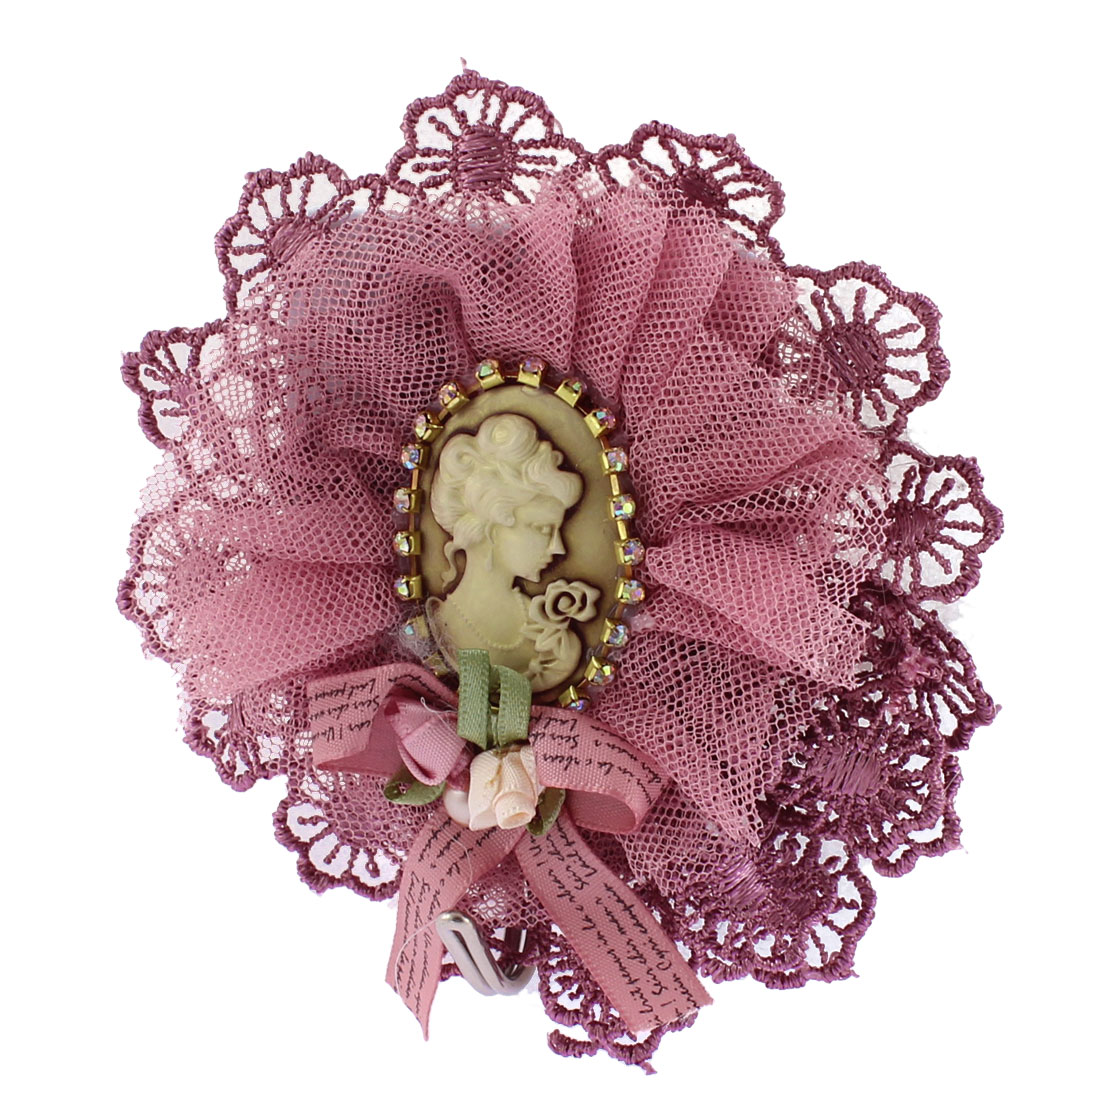 Scarf Bags Keys Portrait Decor Lace Edge Hook Hanger Light Purple